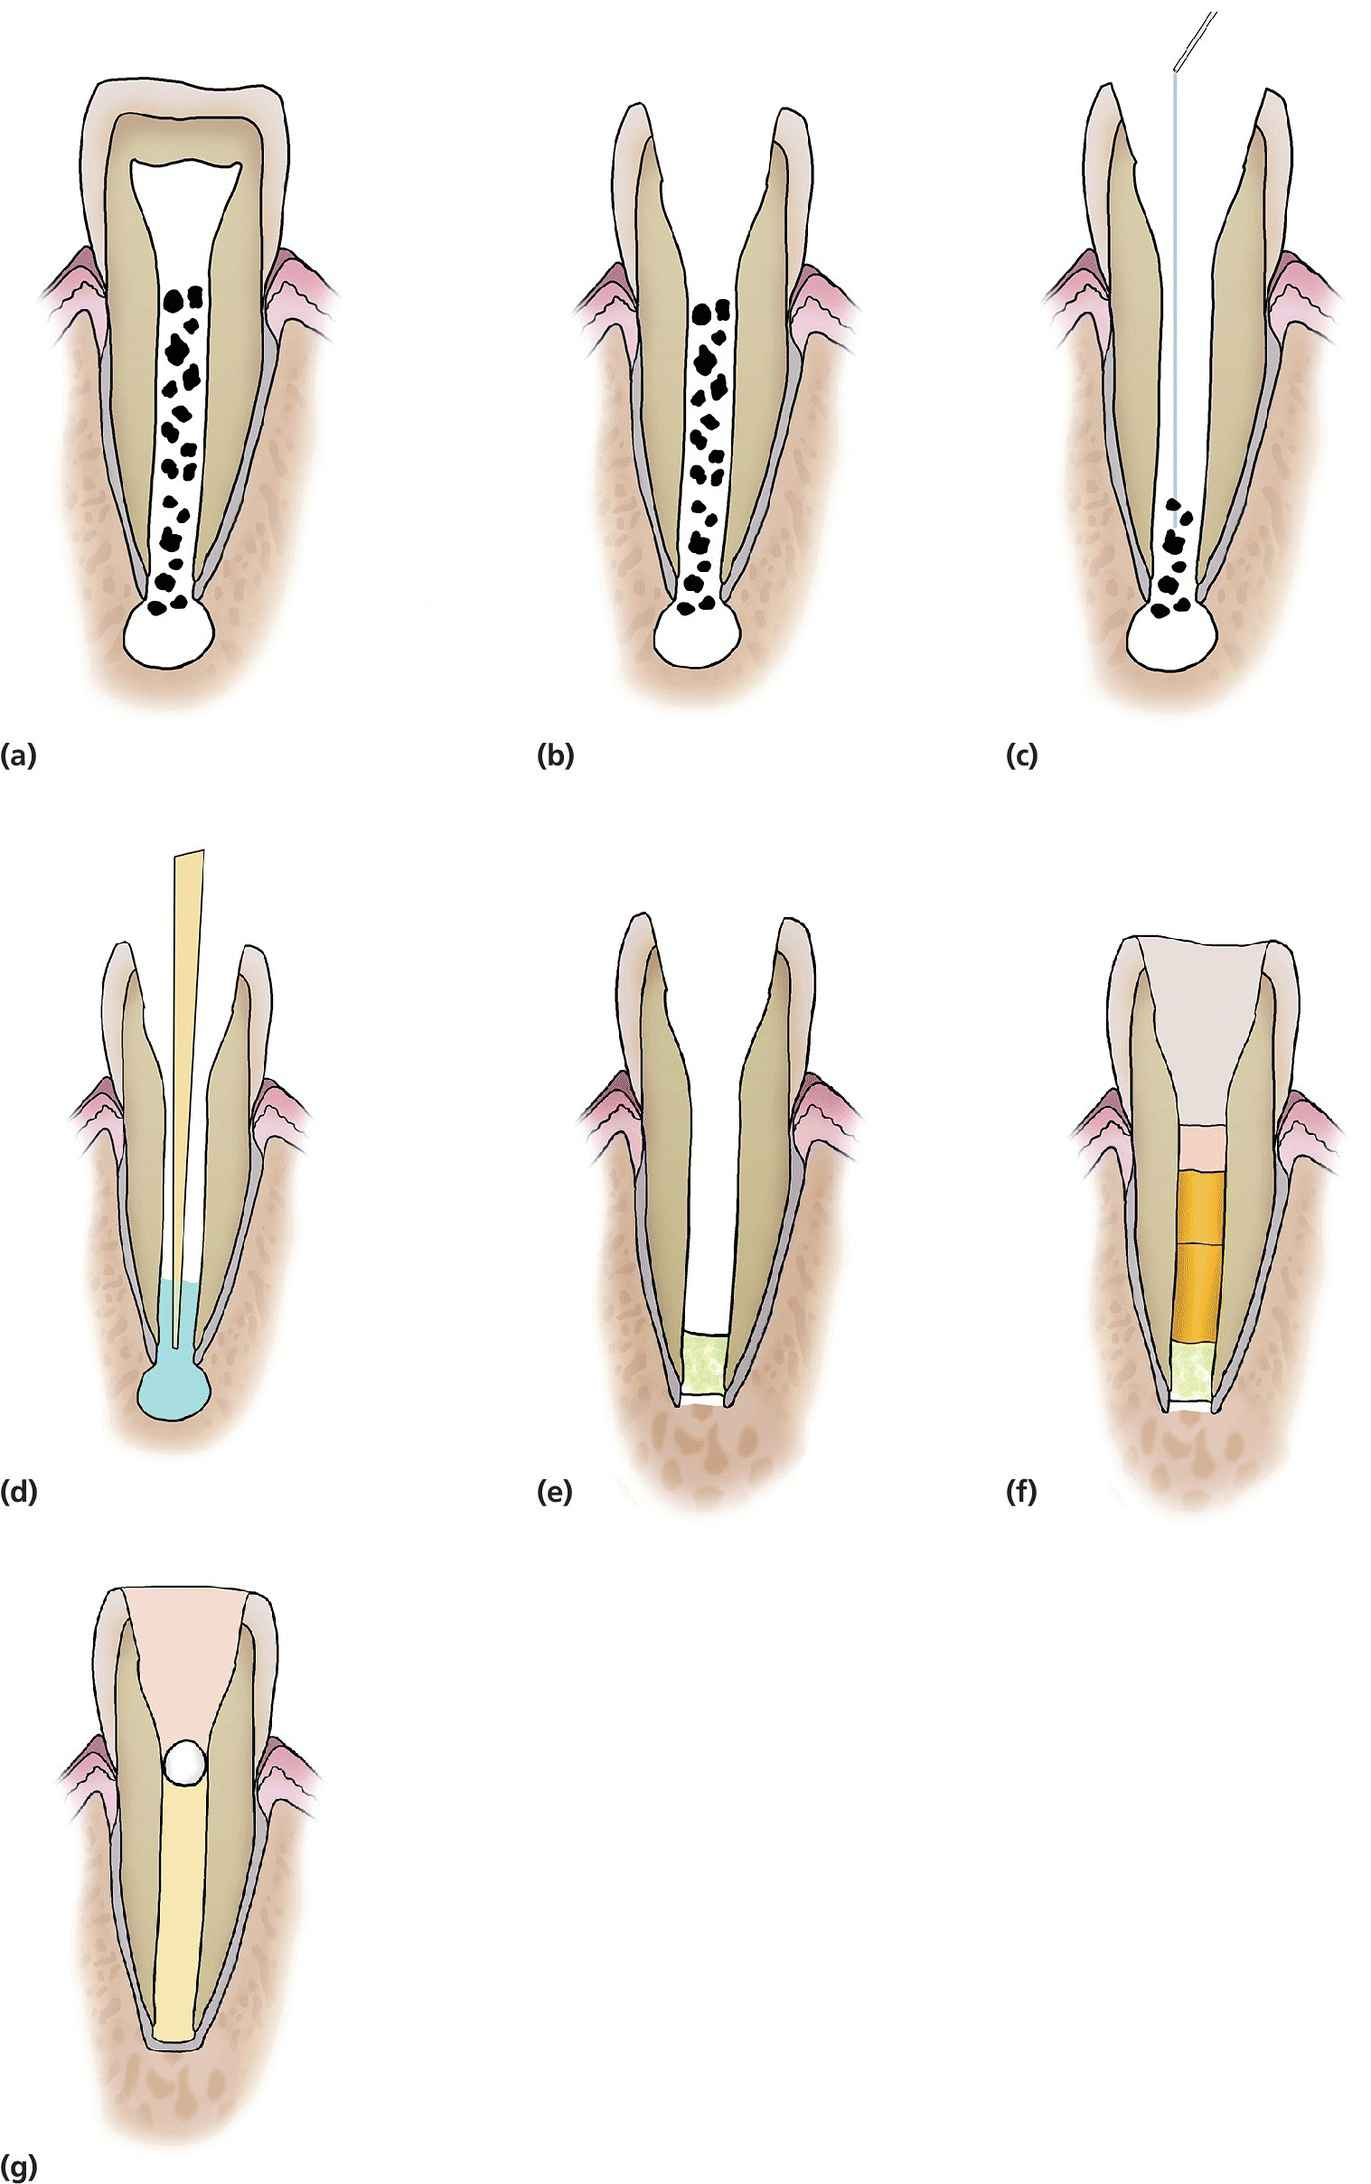 Diagrammatic representation of MTA plug and thermal guttapercha obturation of immature teeth.